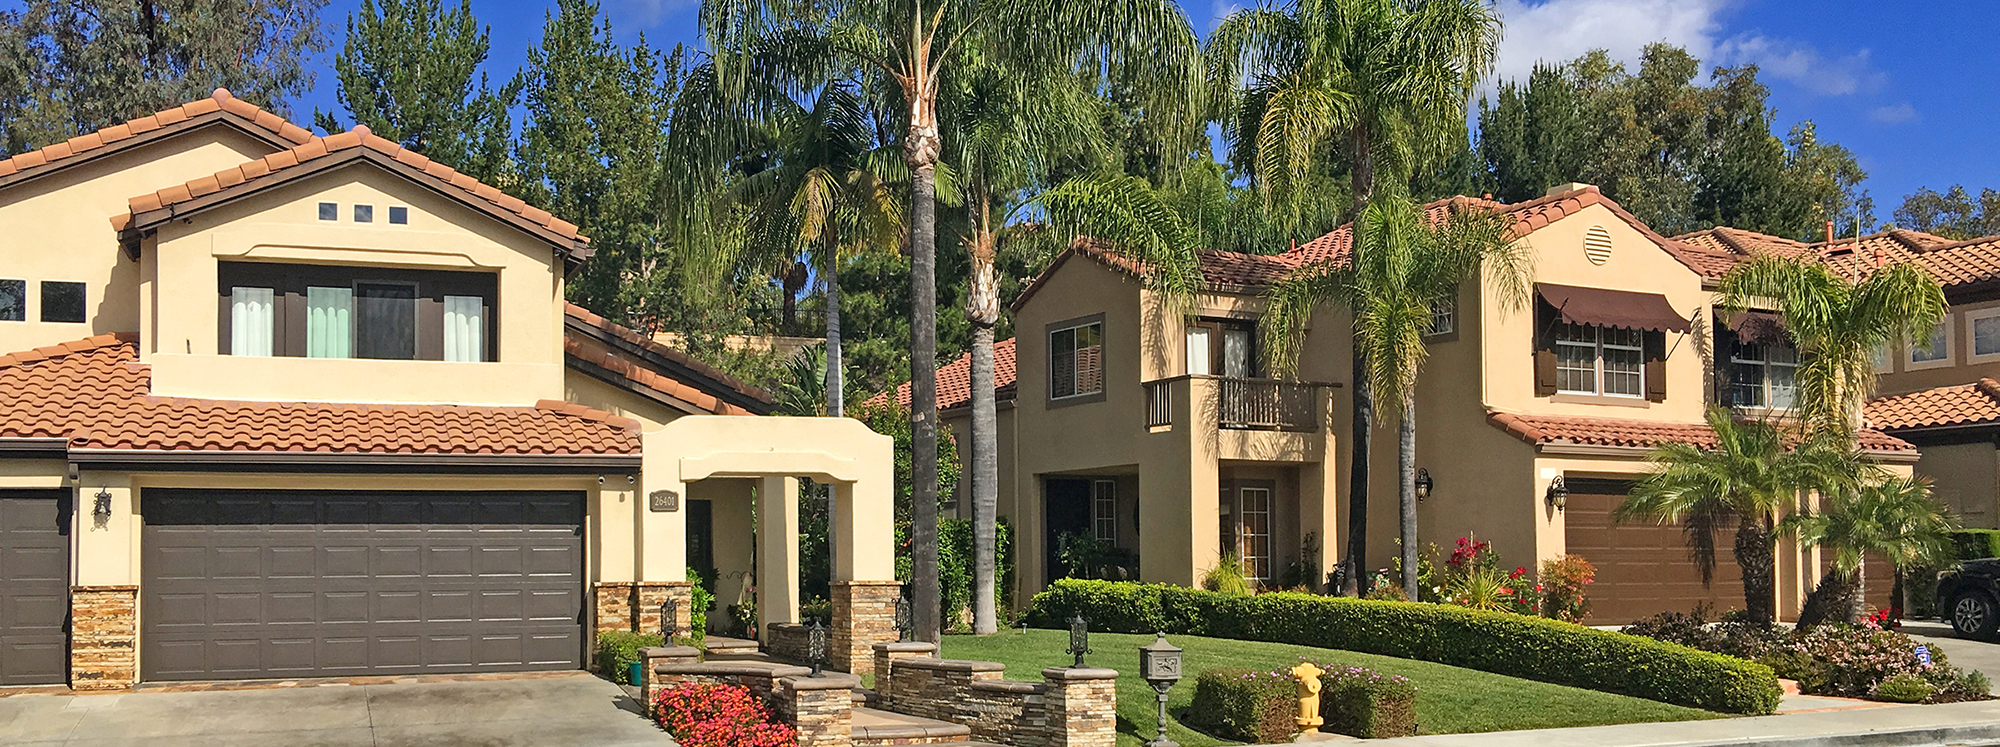 Featured Neighborhoods Mission Viejo Homes for Sale Living in Mission Viejo